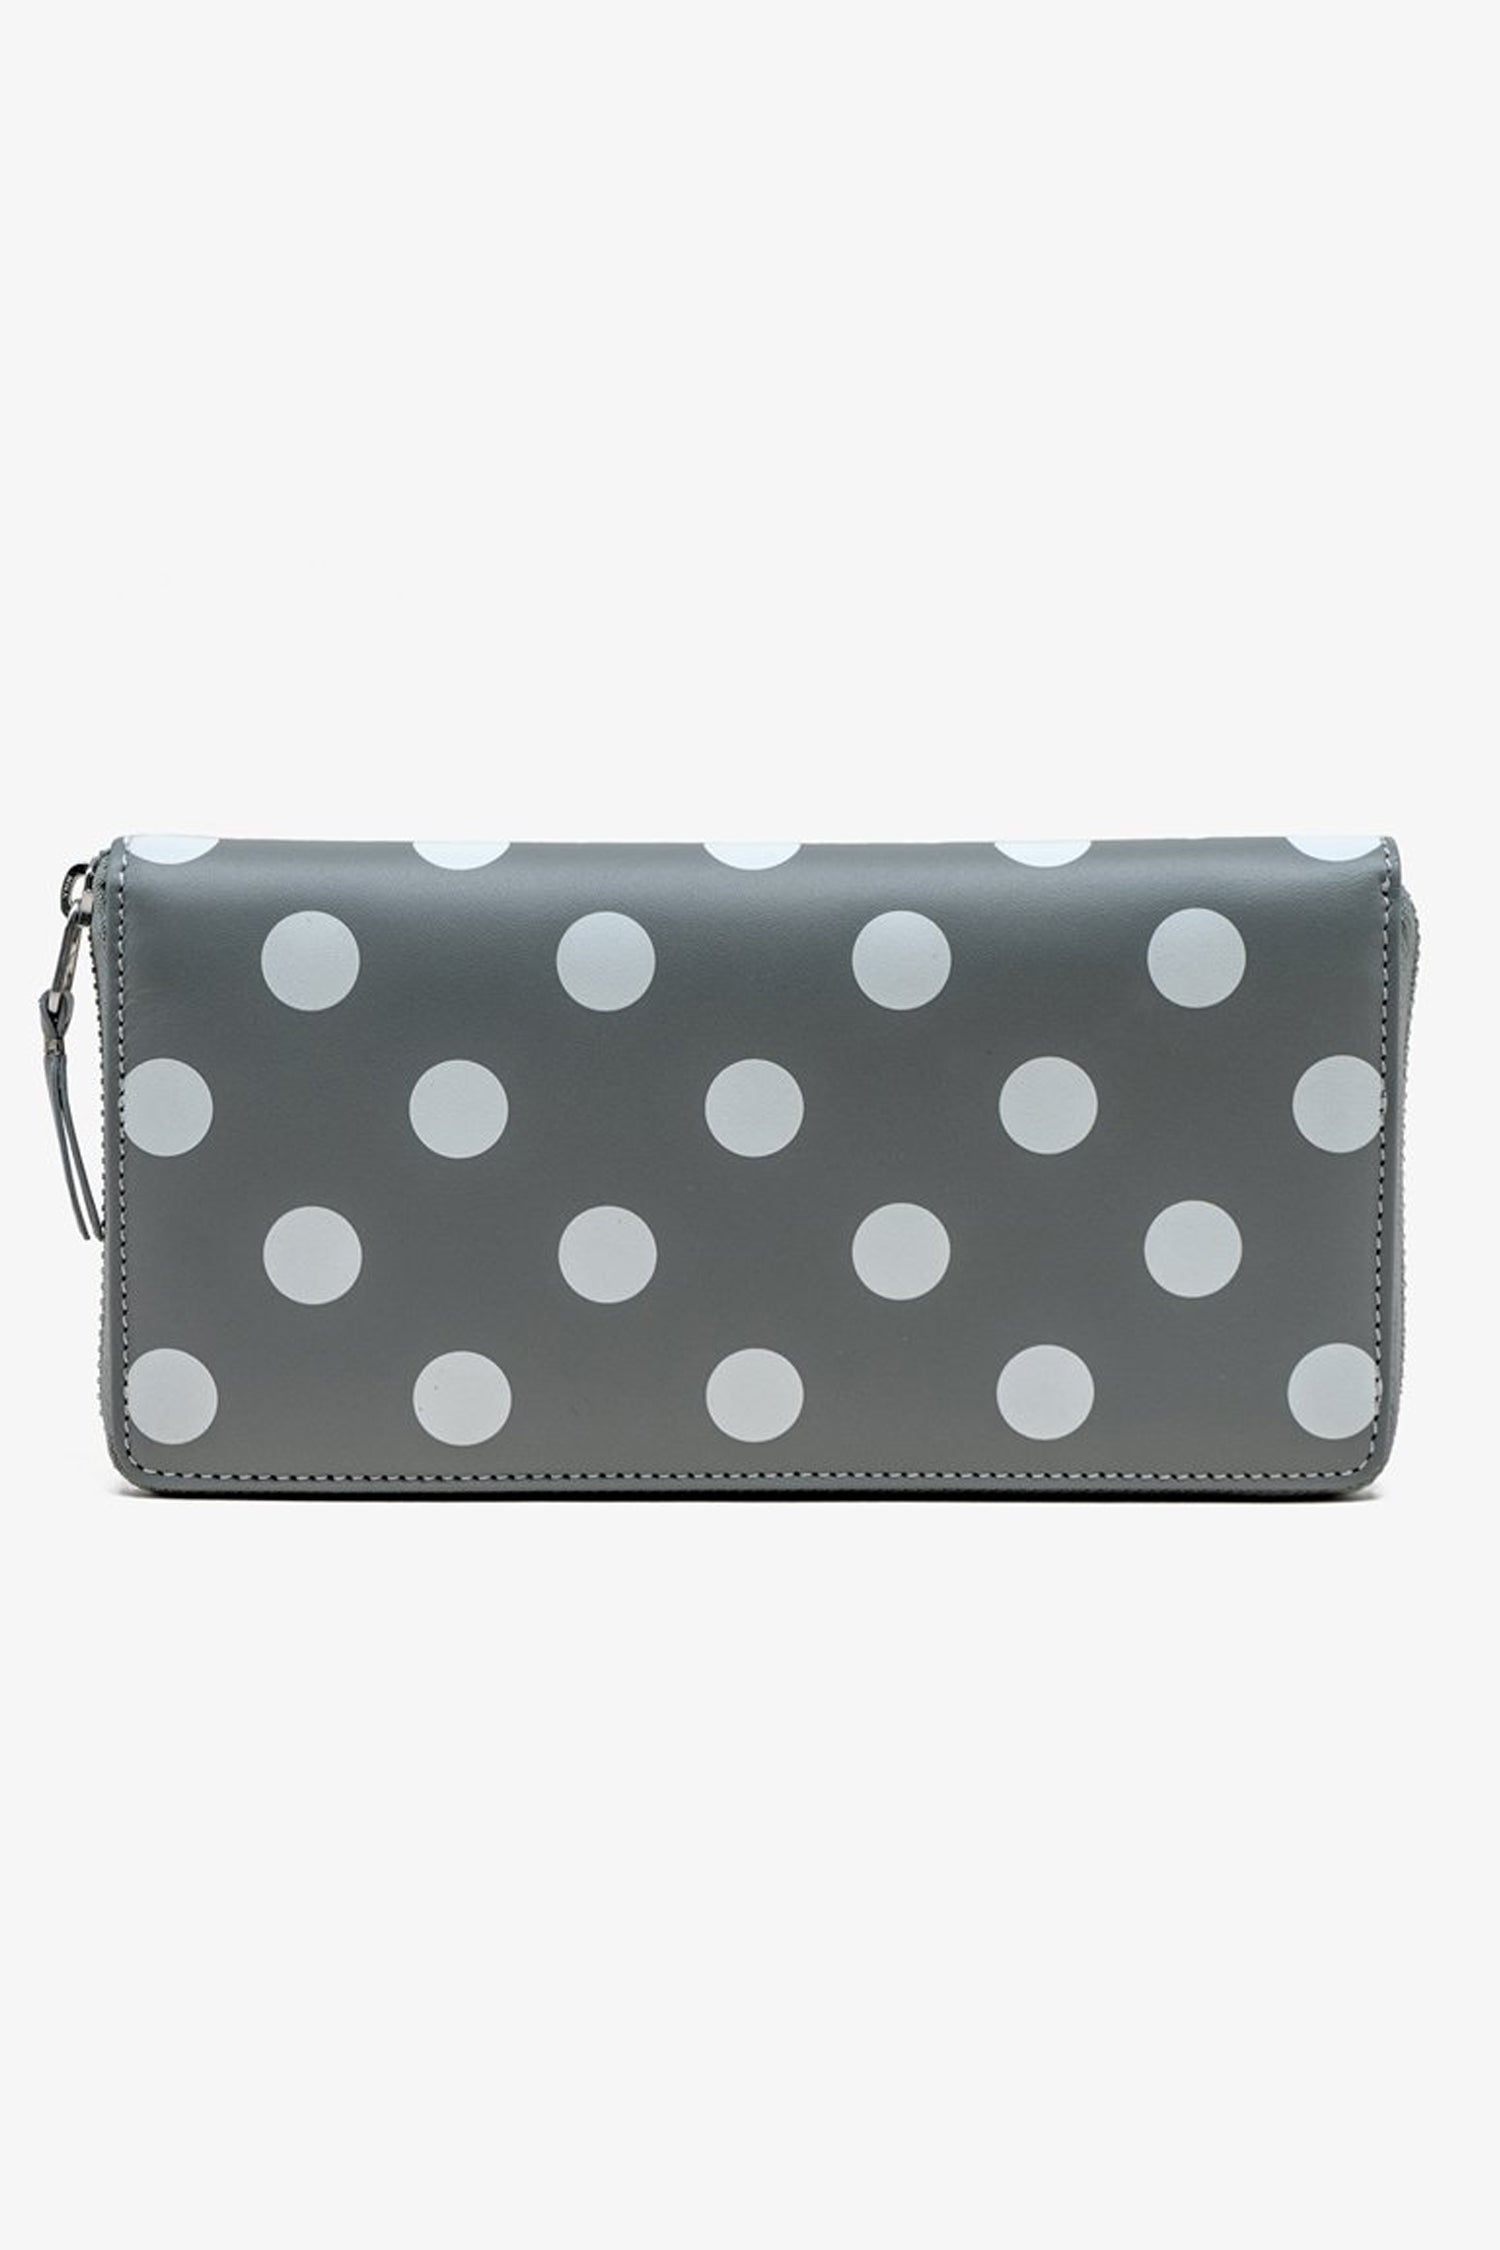 Selectshop FRAME - COMME DES GARCONS WALLETS Printed Polka Dots Long Wallet (SA0110PD) Wallet Dubai